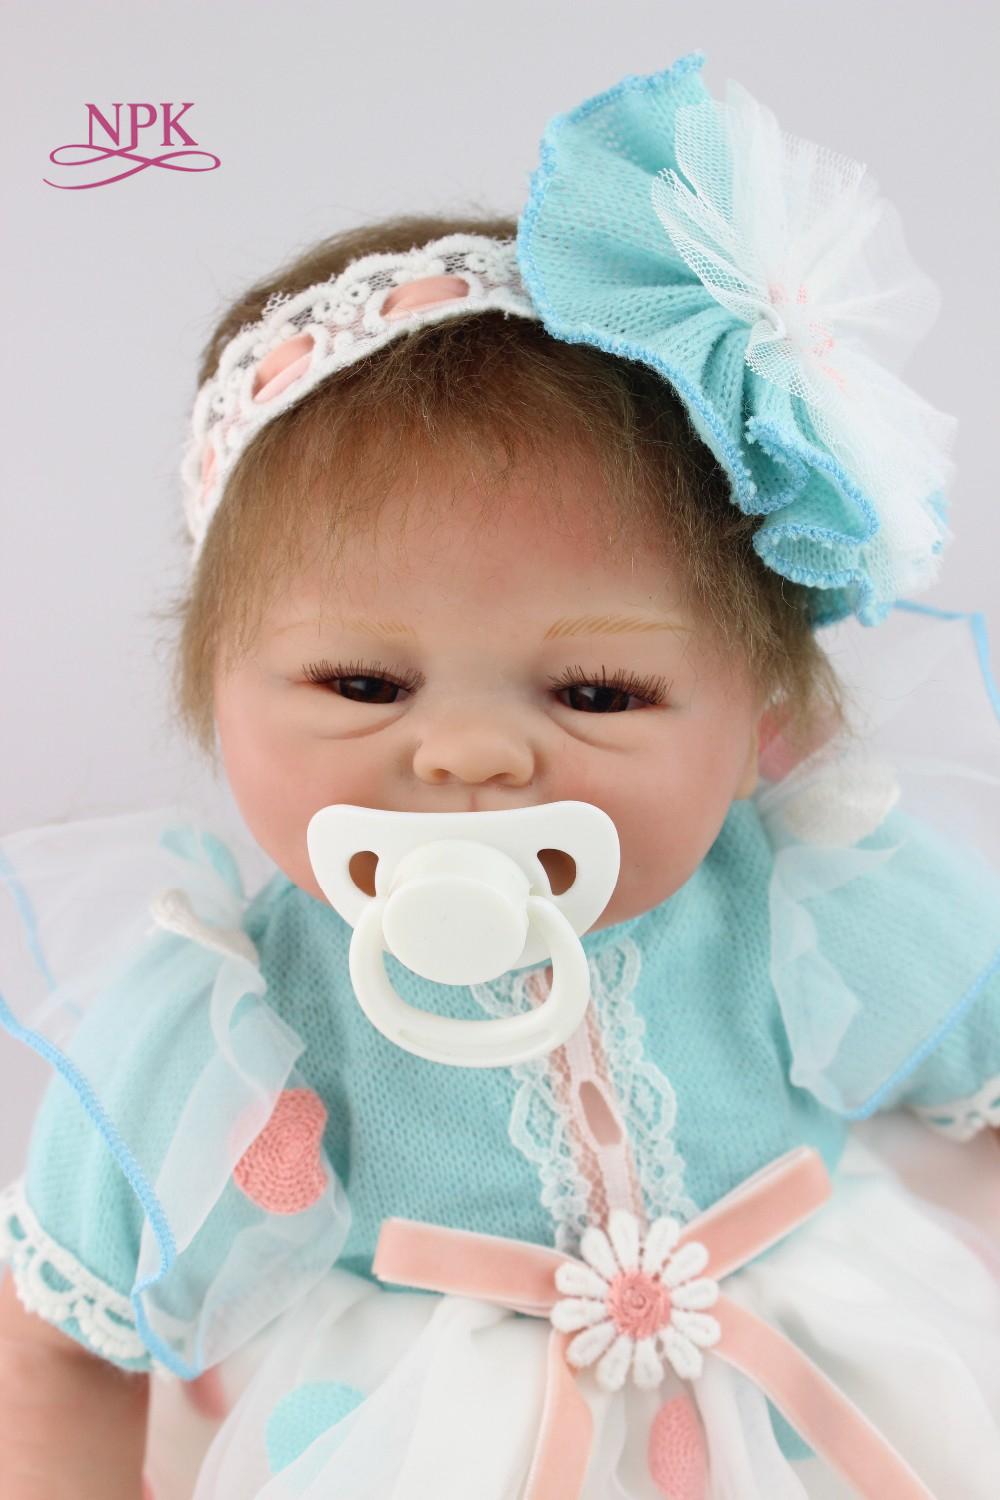 43cm Silicone Reborn Baby Doll Toys Lifelike Interactive Handmade Alive Baby Dolls Play House Girls Fashion Birthday Brinquedos43cm Silicone Reborn Baby Doll Toys Lifelike Interactive Handmade Alive Baby Dolls Play House Girls Fashion Birthday Brinquedos